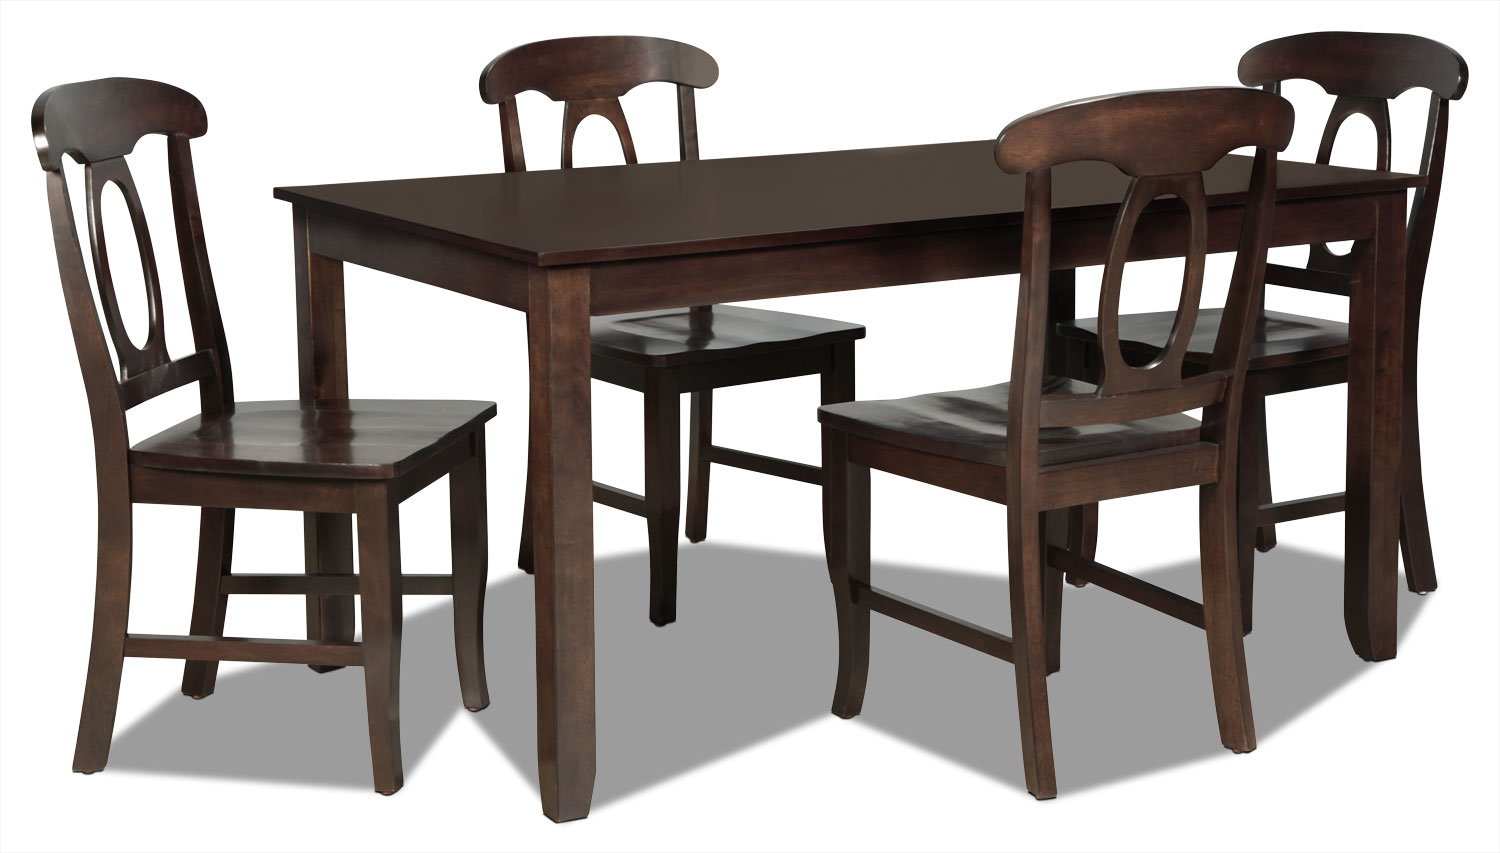 Dining Room Furniture - Manila Table and 4 Chairs